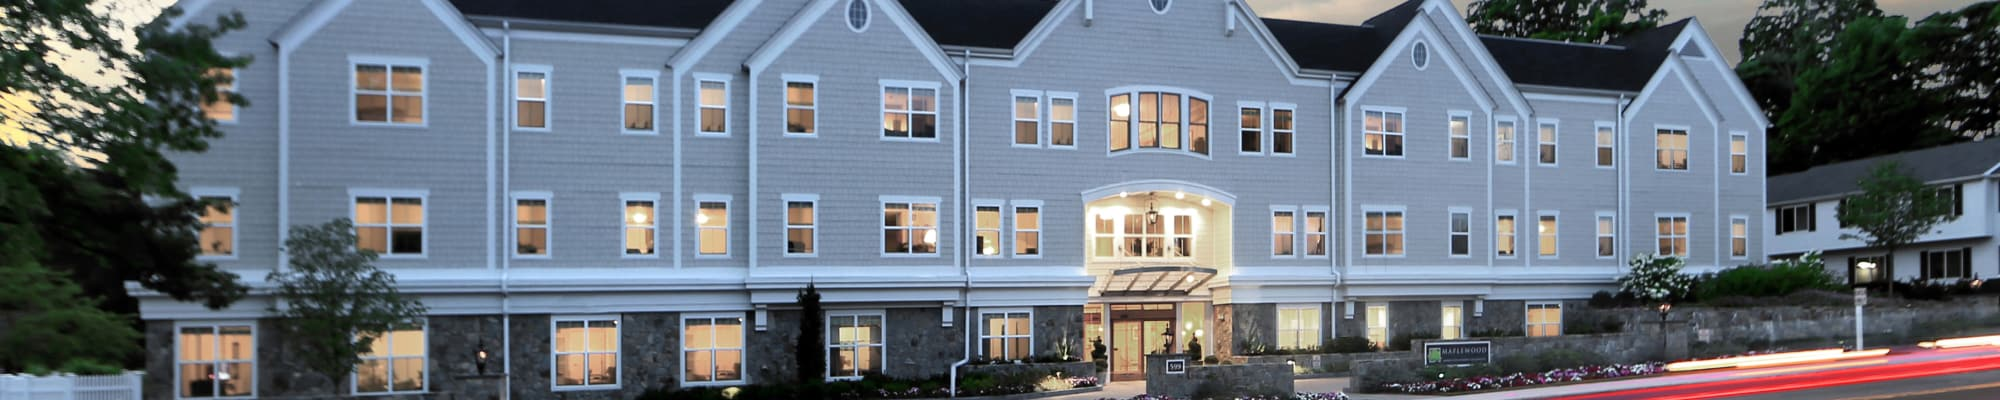 News & Events at Maplewood at Darien in Darien, Connecticut